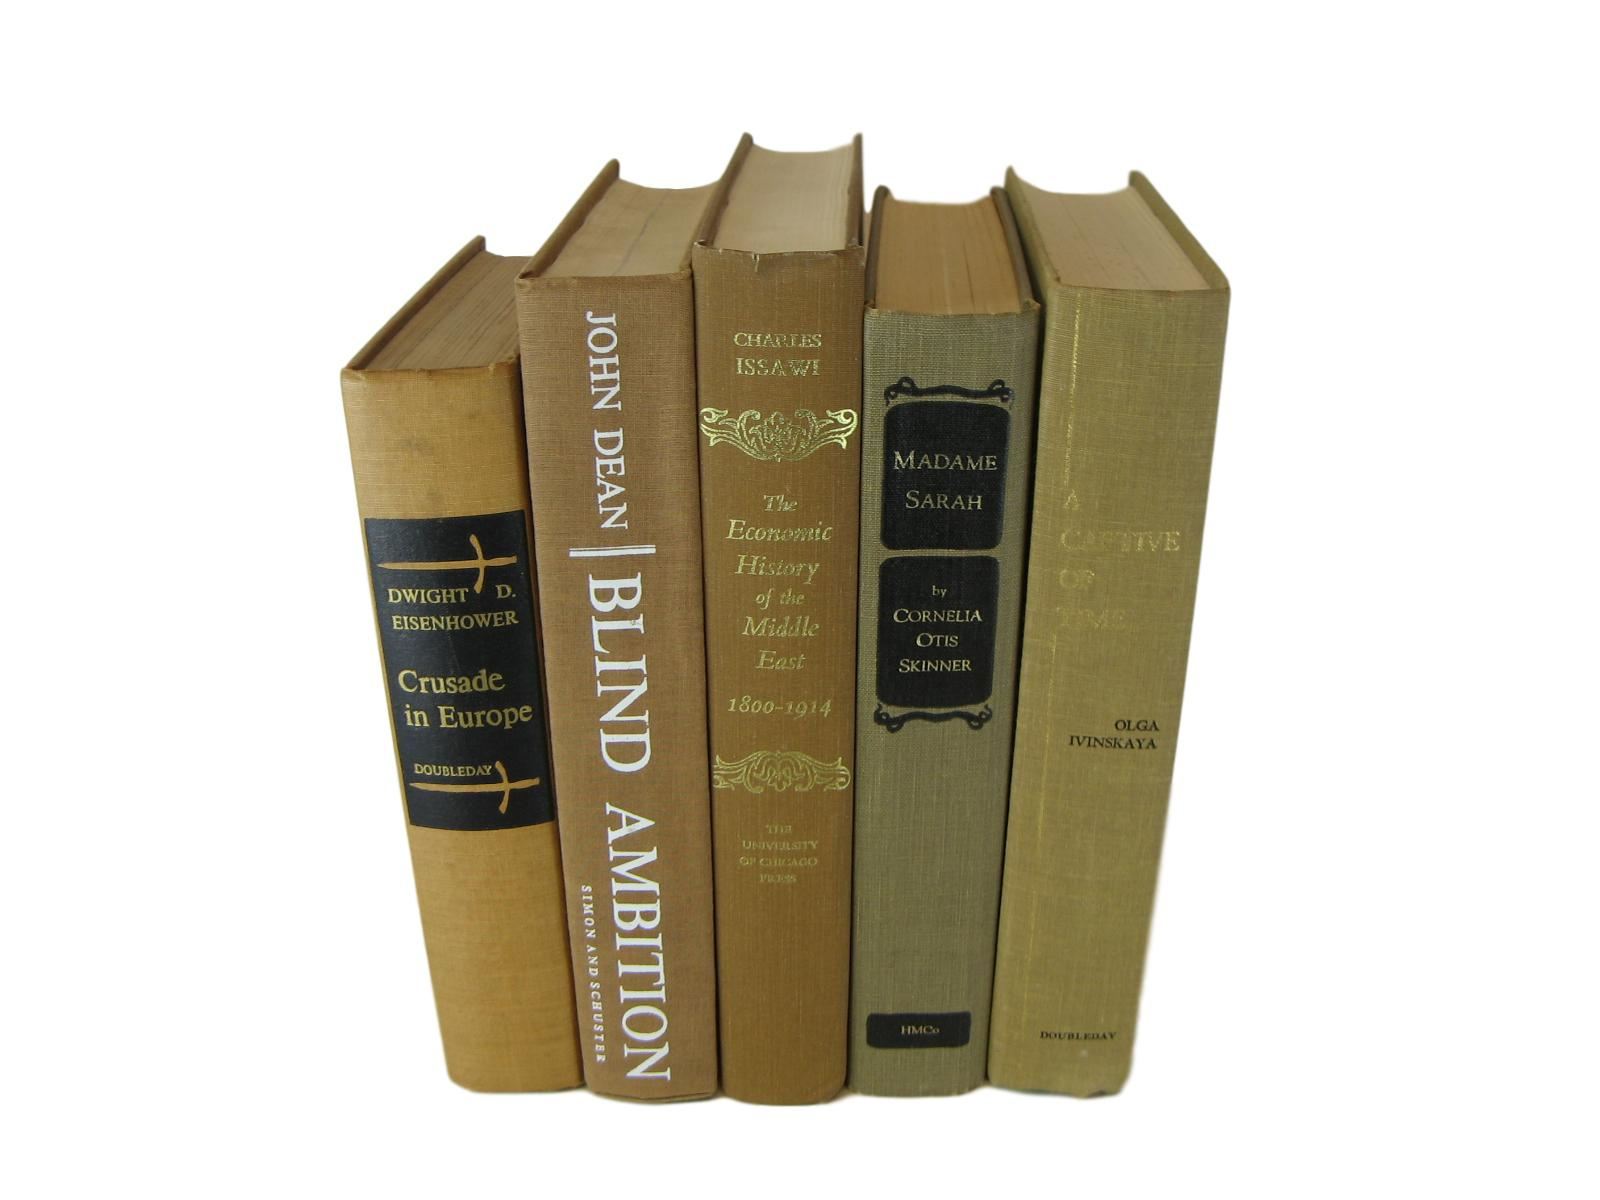 Brown Vintage Decorative Books for Home Decor, S/5 - Decades of Vintage